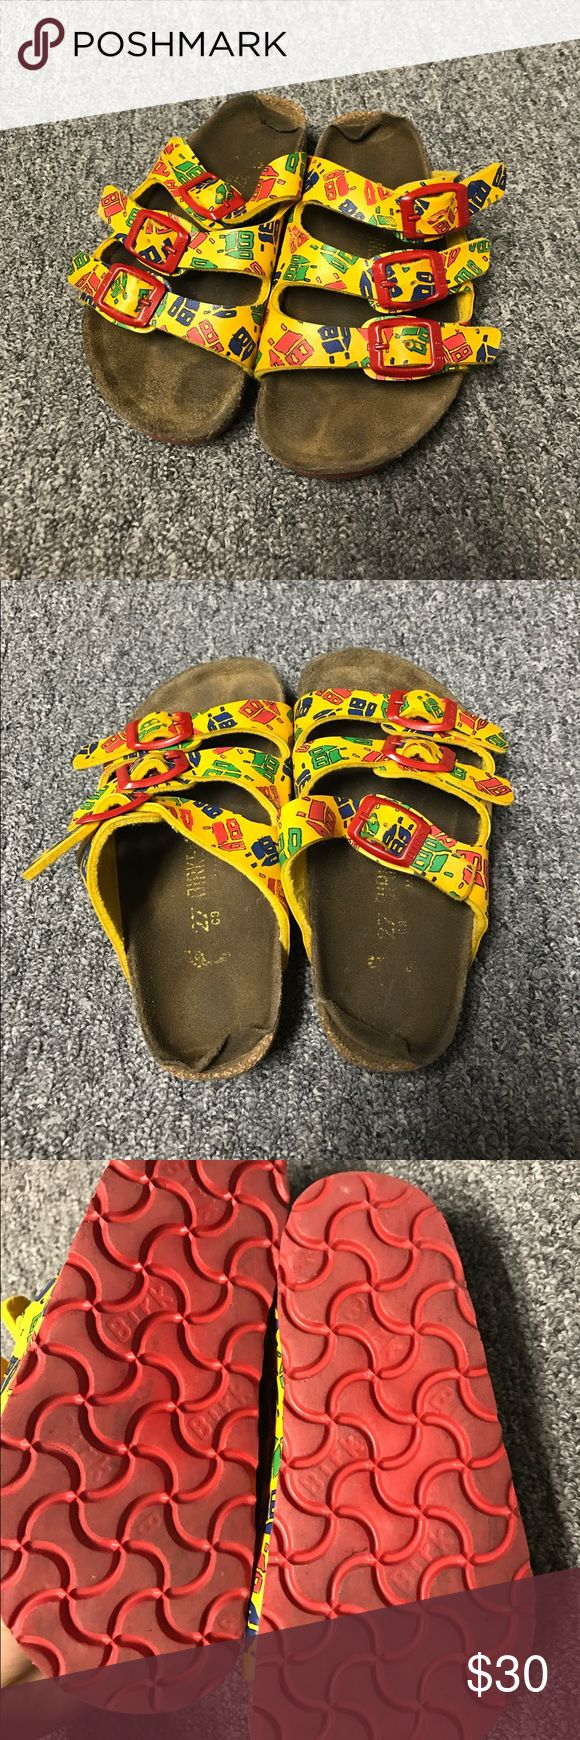 Worn Birkenstock's for kids! Size 27! Good looks Size 27 Birkenstock's for kids! Worn soles but the straps and bottoms are in pretty good condition! Let me know if you have questions:) Birkenstock Shoes Sandals & Flip Flops